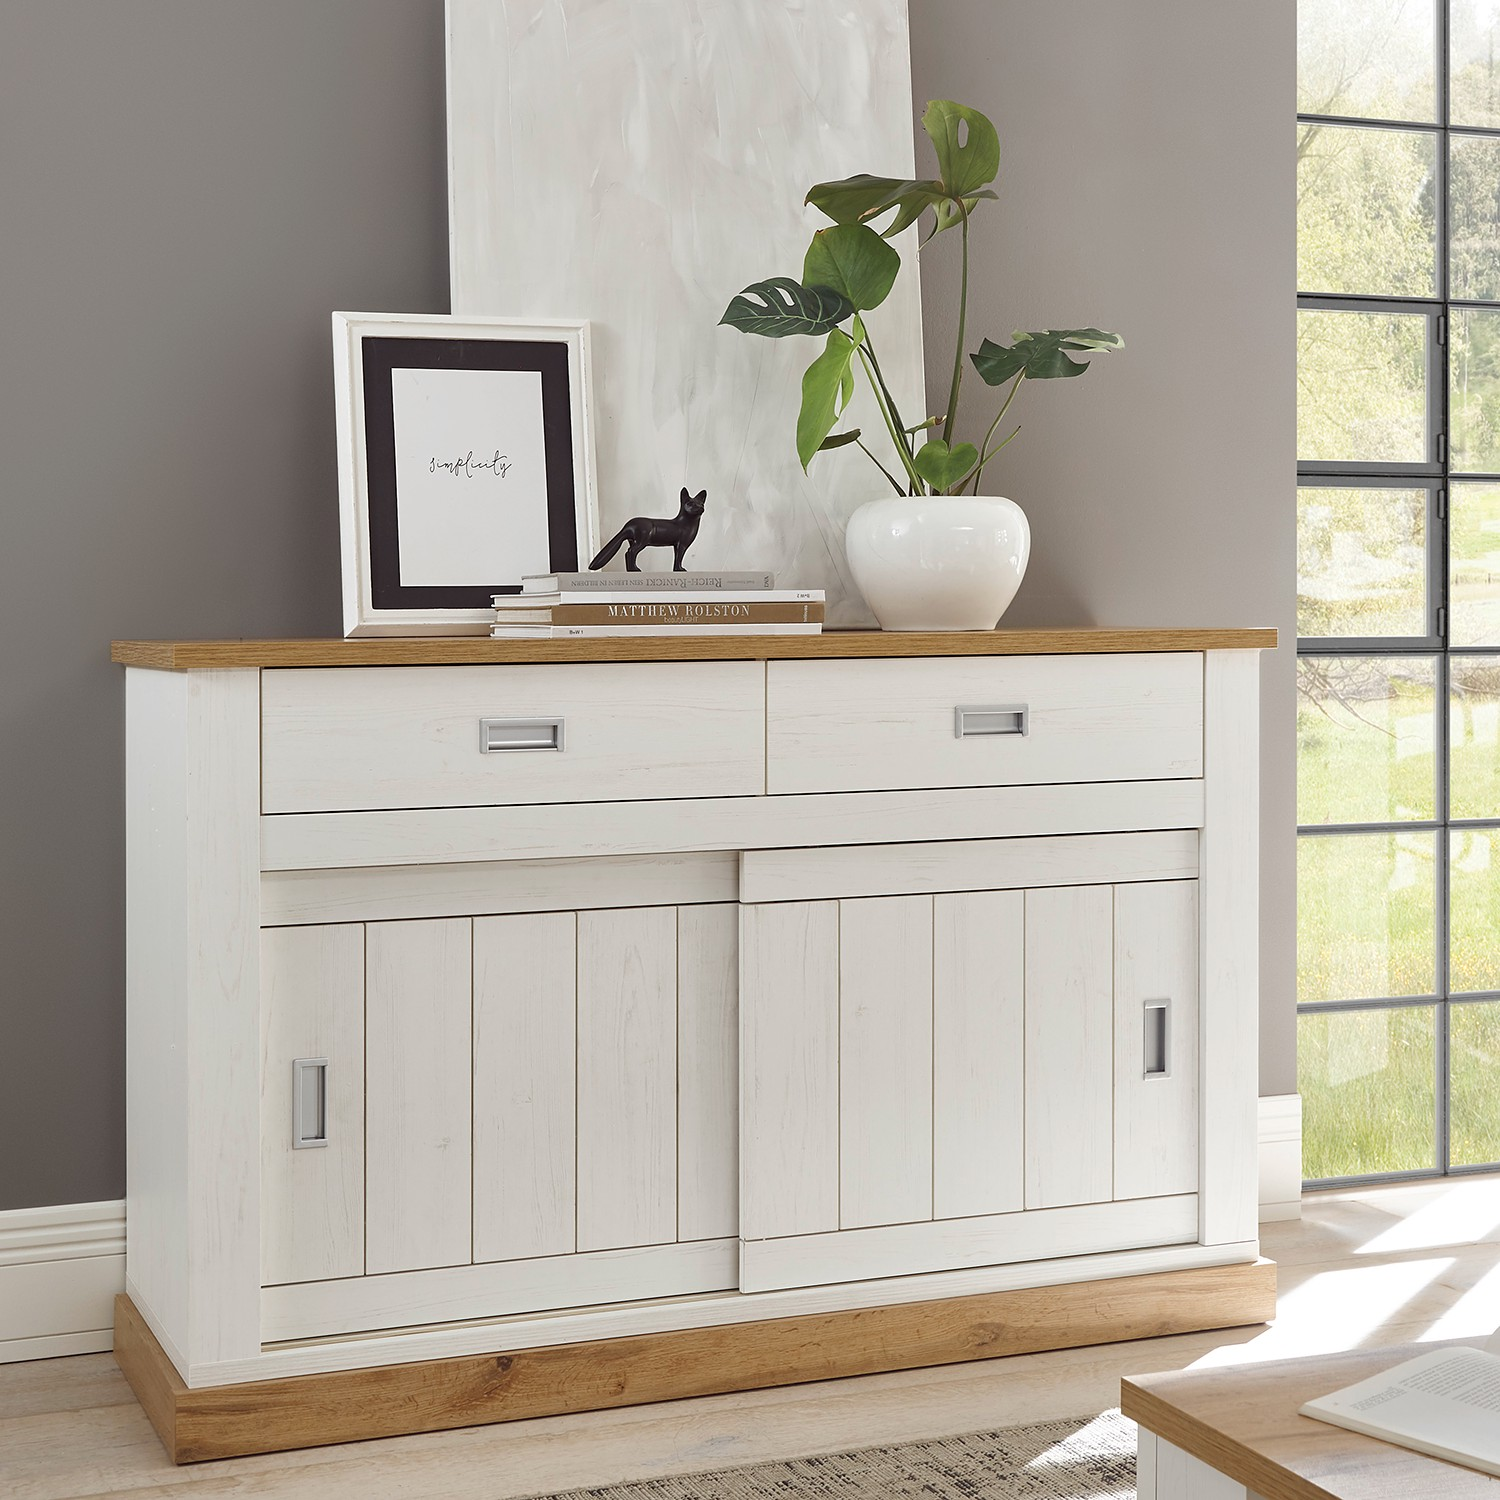 home24 Sideboard Ollezy I